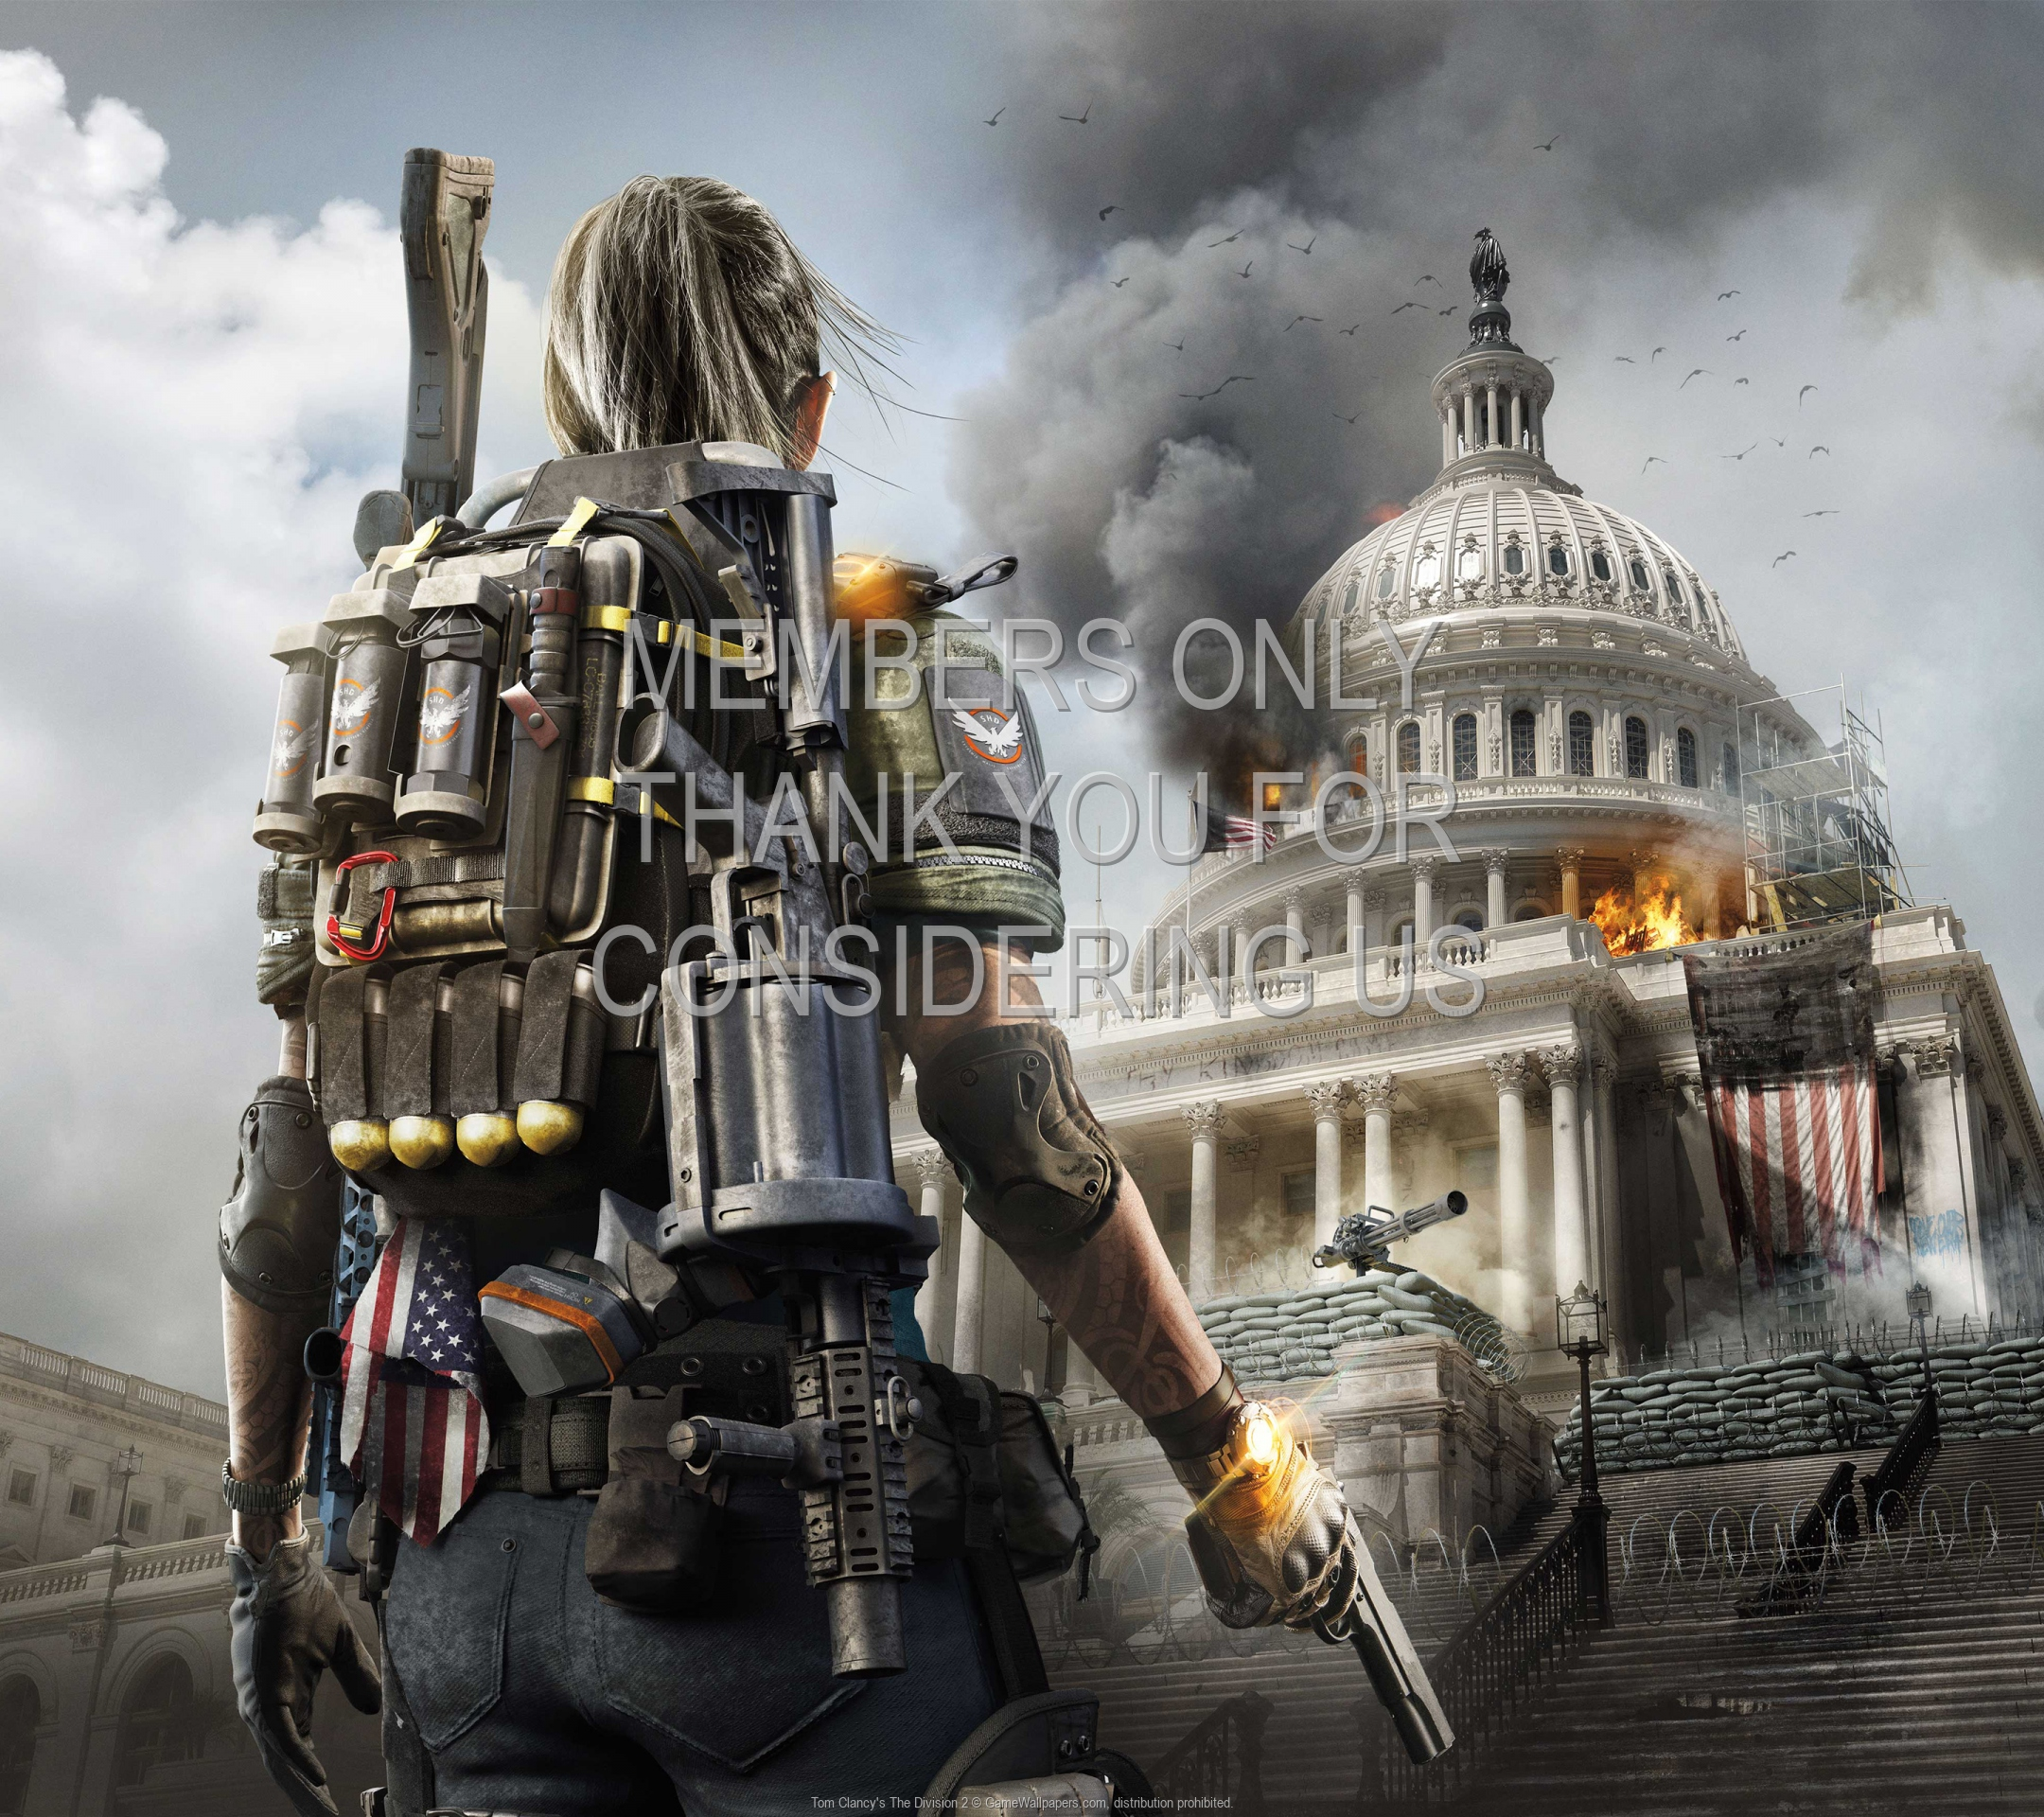 Tom Clancy's The Division 2 1920x1080 Mobile wallpaper or background 04